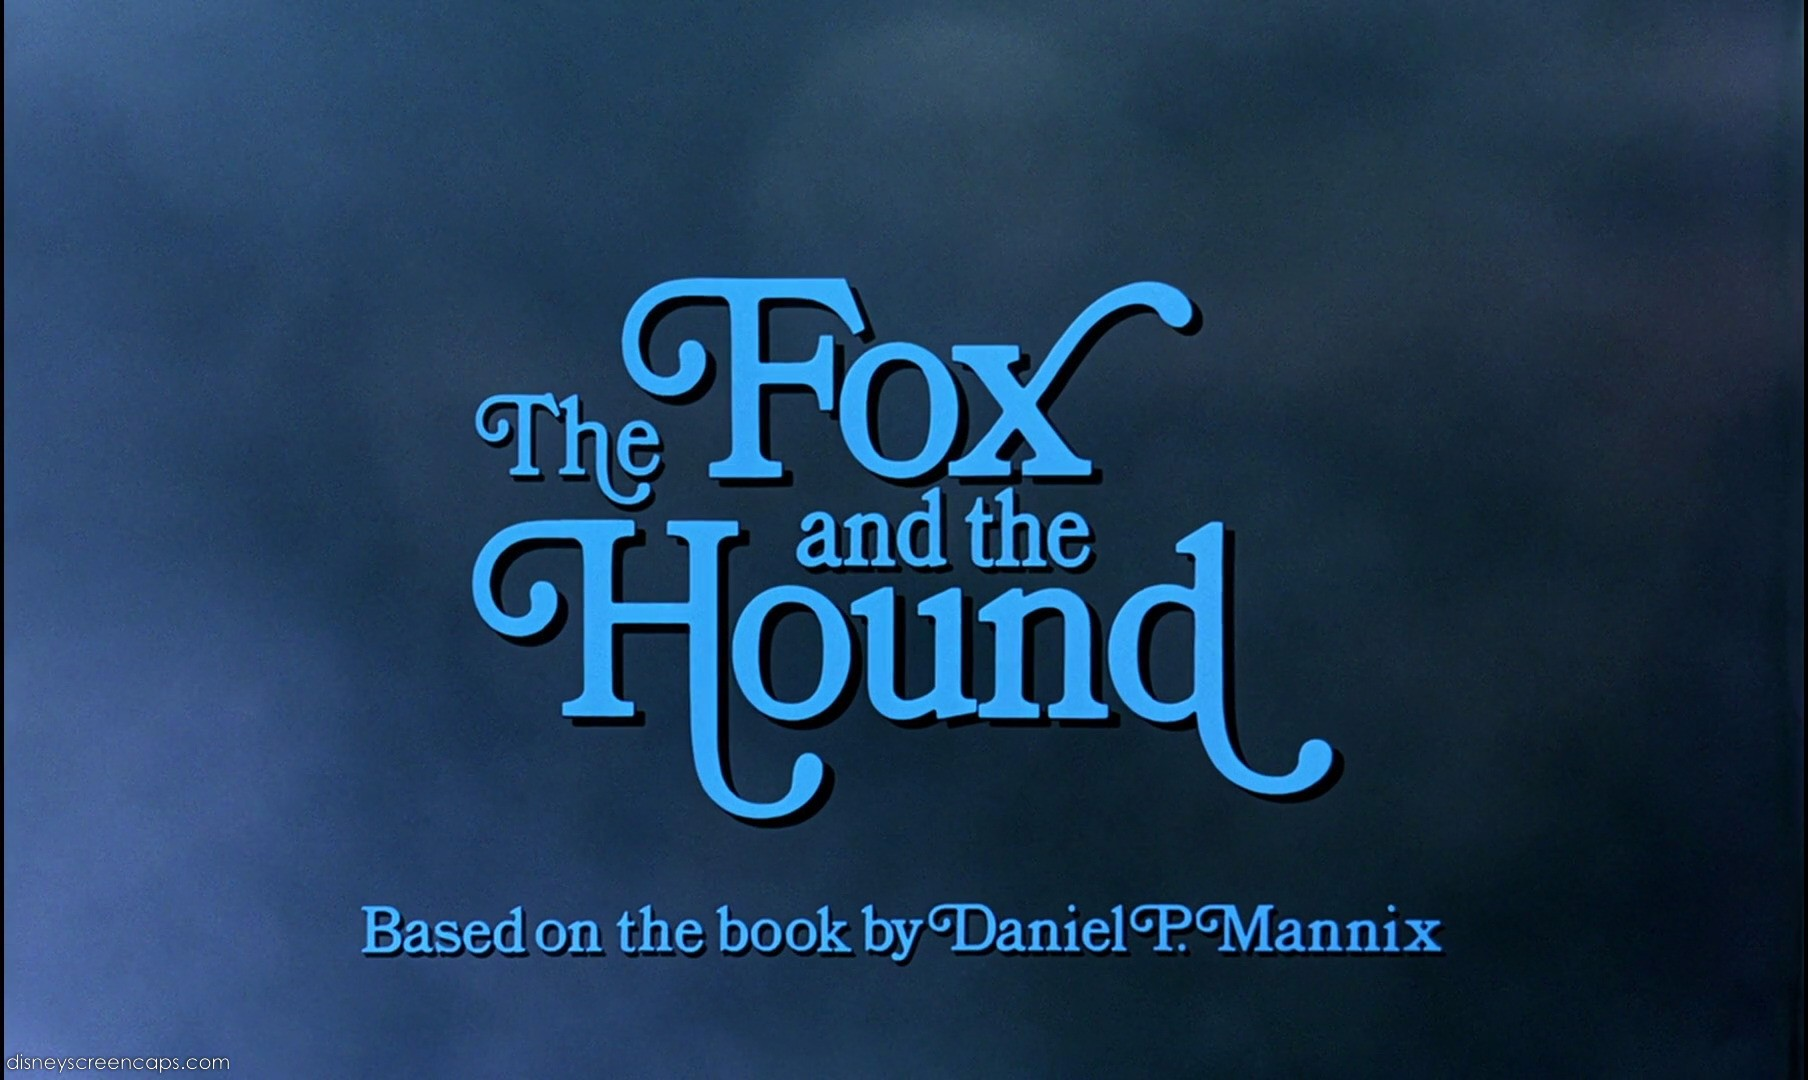 The Fox and the Hound (1981 film)